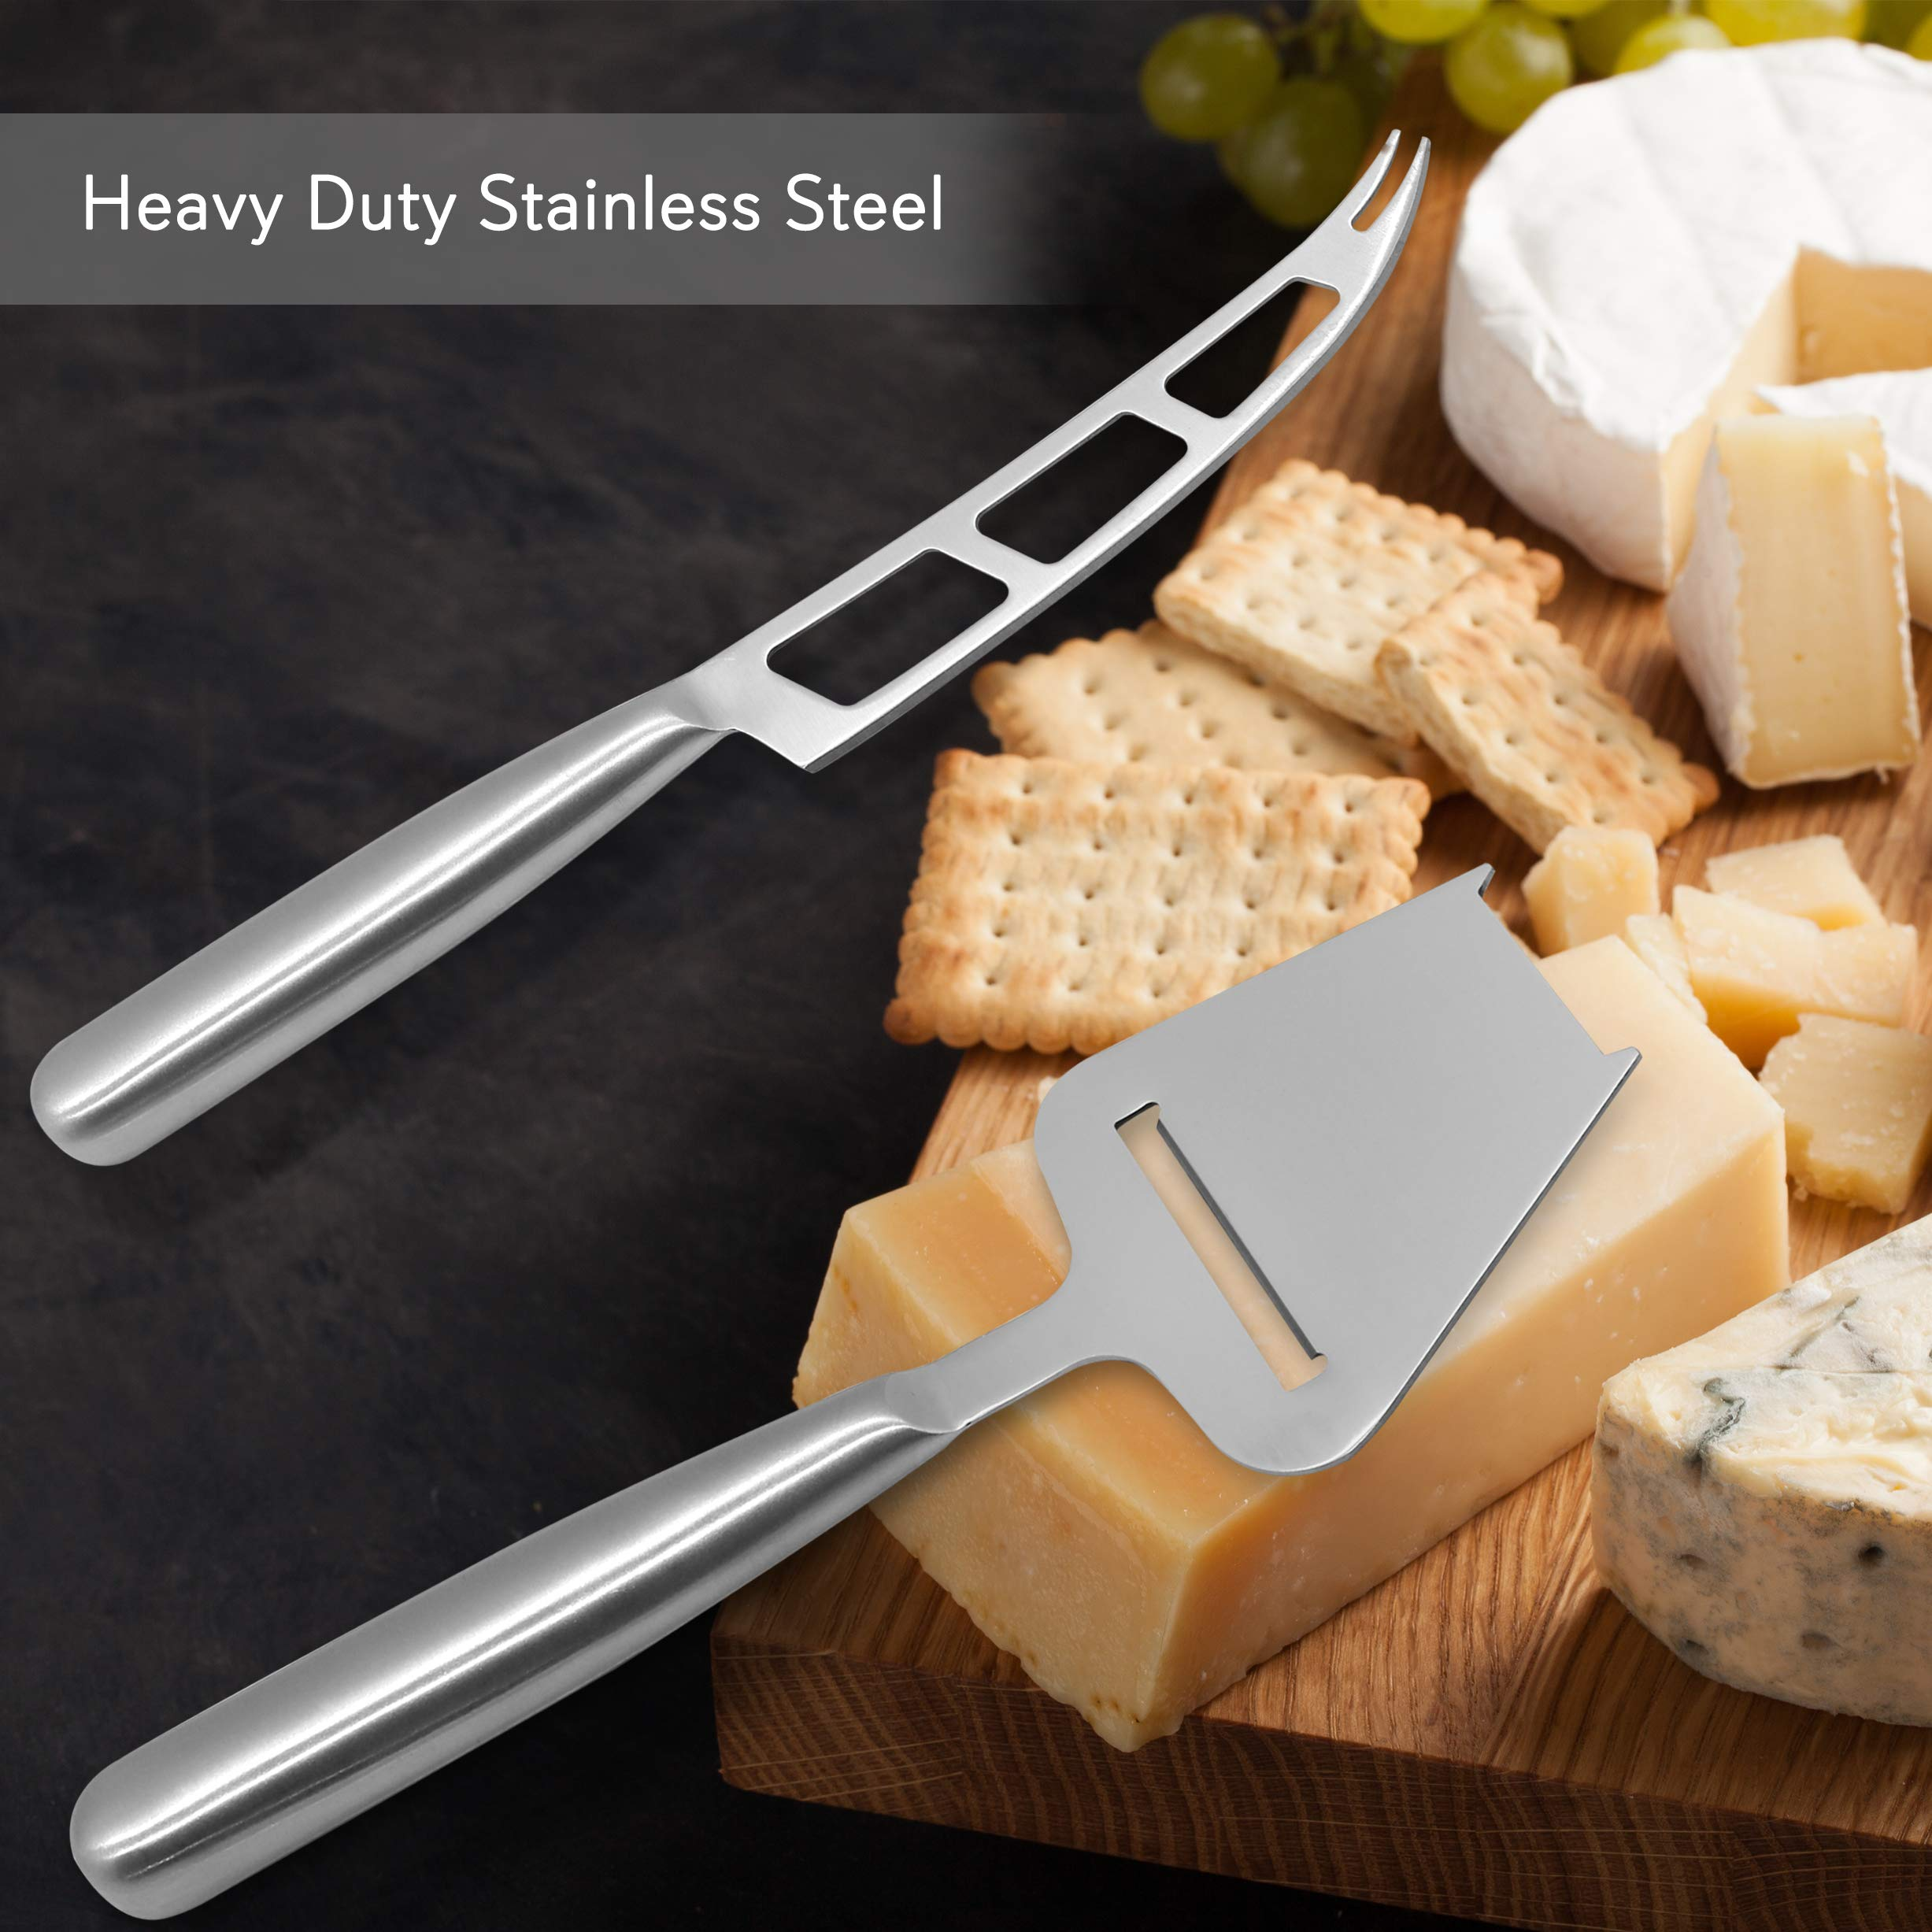 2 Piece Cheese Cutting Set - Portable Fancy Stainless Steel Non Stick Cheese Cutter Knife and Cheese Slicer - Cut, Shave, Slice, Serve, Spread - Gouda Blue Brie Parmesan Cheddar - NutriChef PKCNF10 by Nutrichef (Image #5)